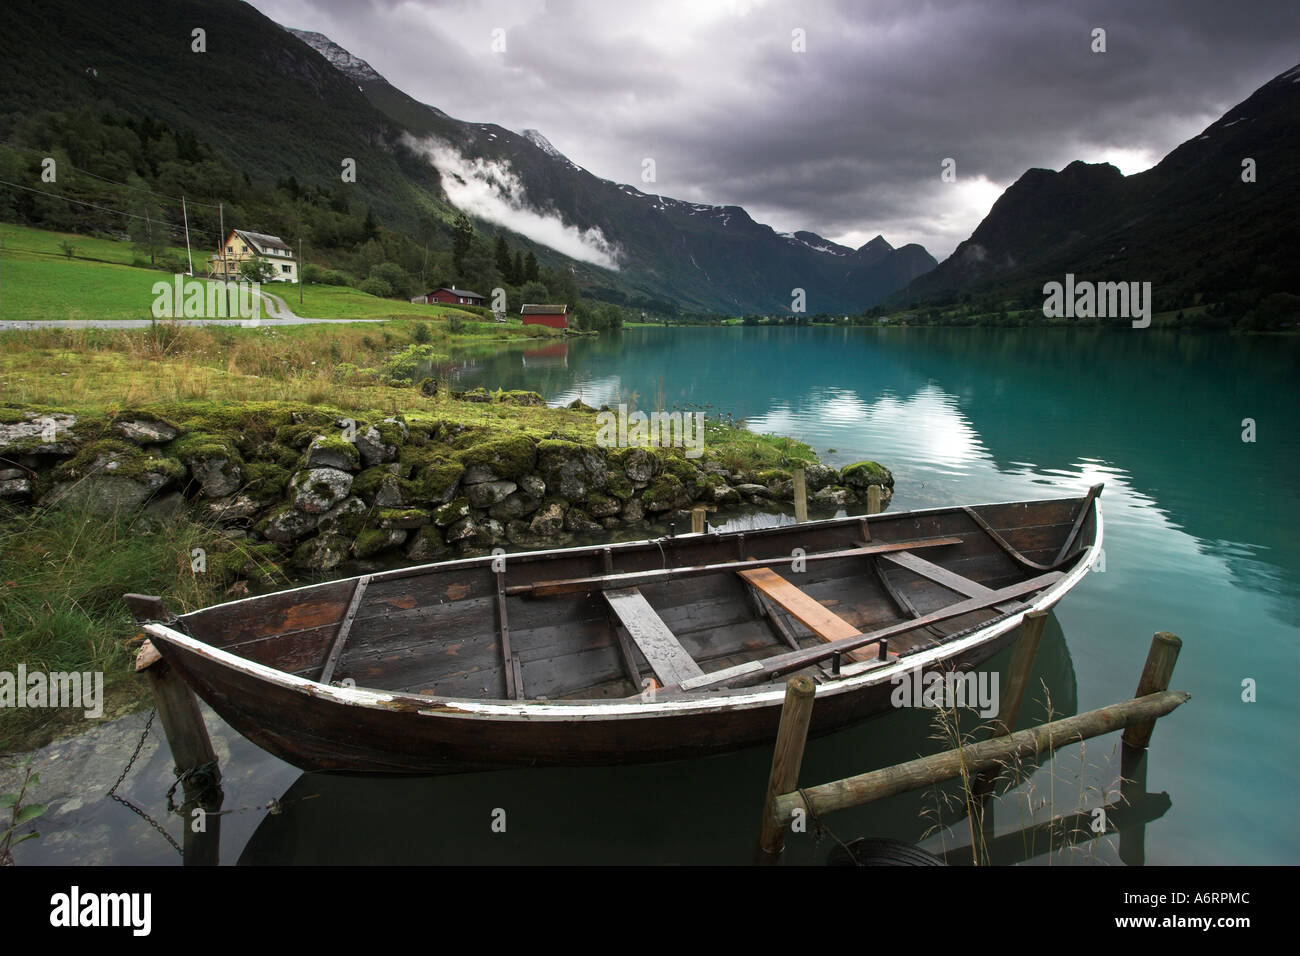 A Norwegian rowing boat lies tethered in the mirror like turquoise water of Lake Olden, Norway - Stock Image